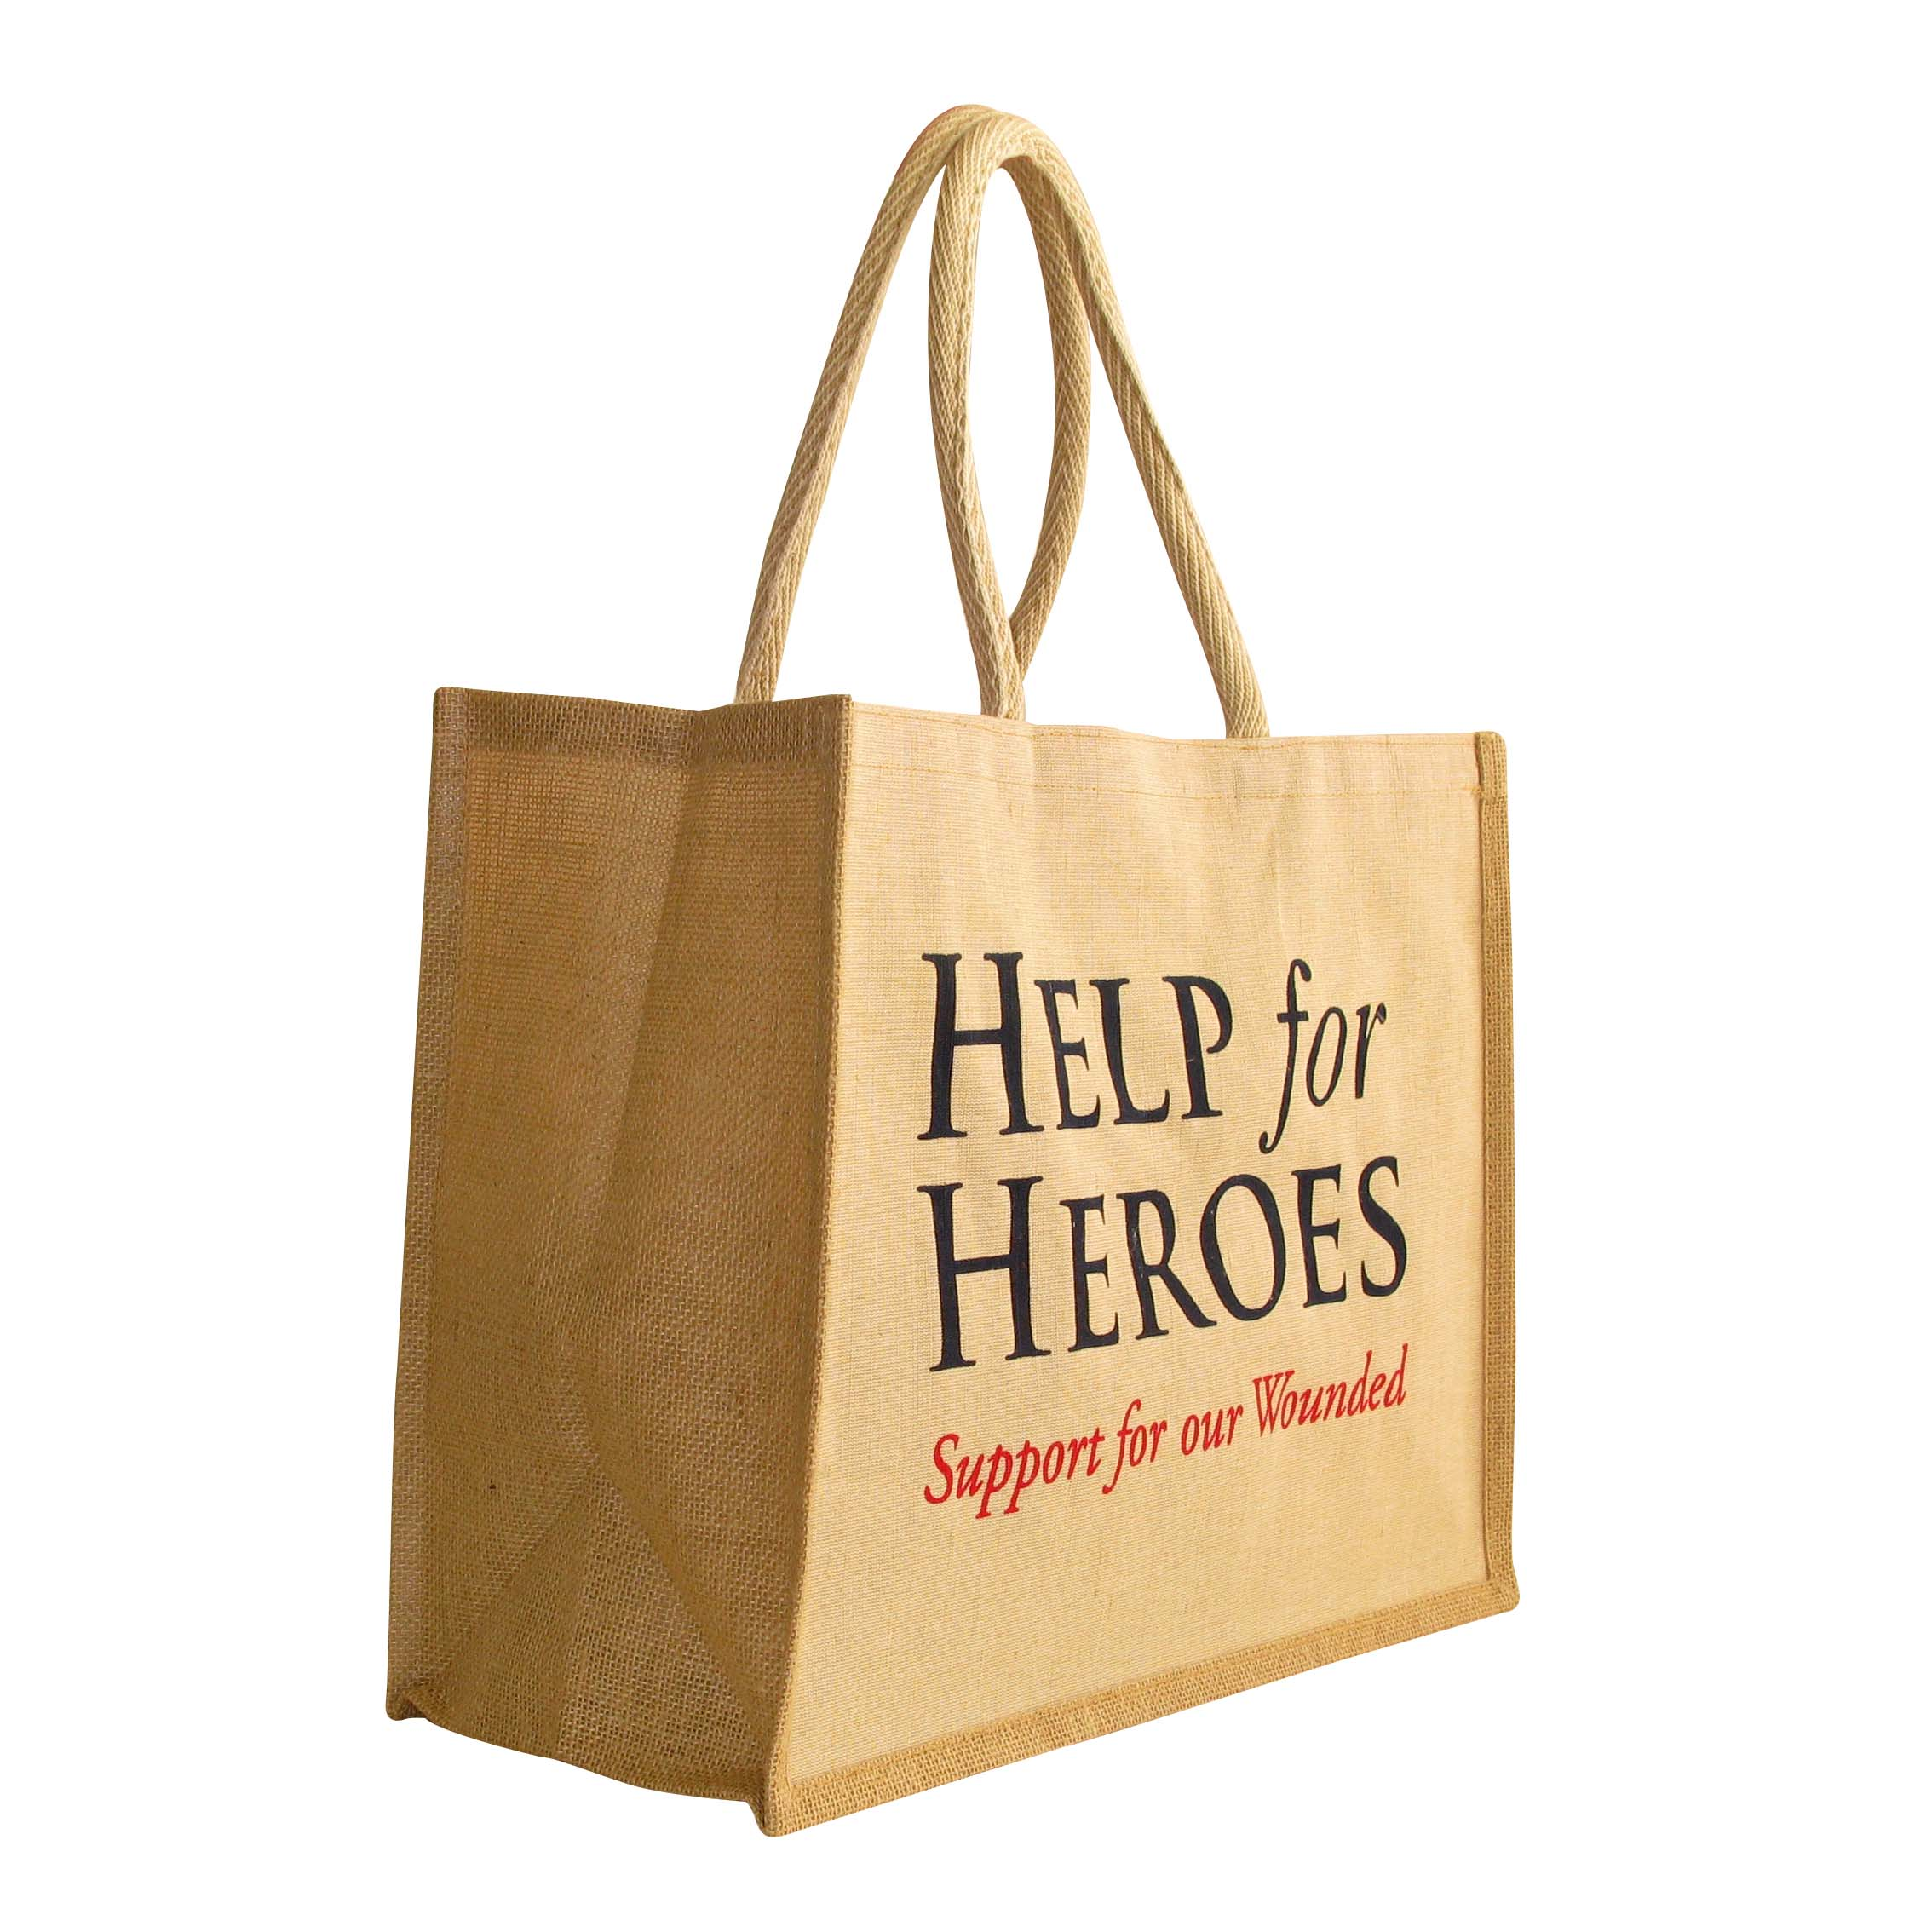 02a258bbf9 Help for Heroes is an incredible charity launched in 2007 offering help to  British Servicemen and Women who have suffered injury or been wounded in  the line ...